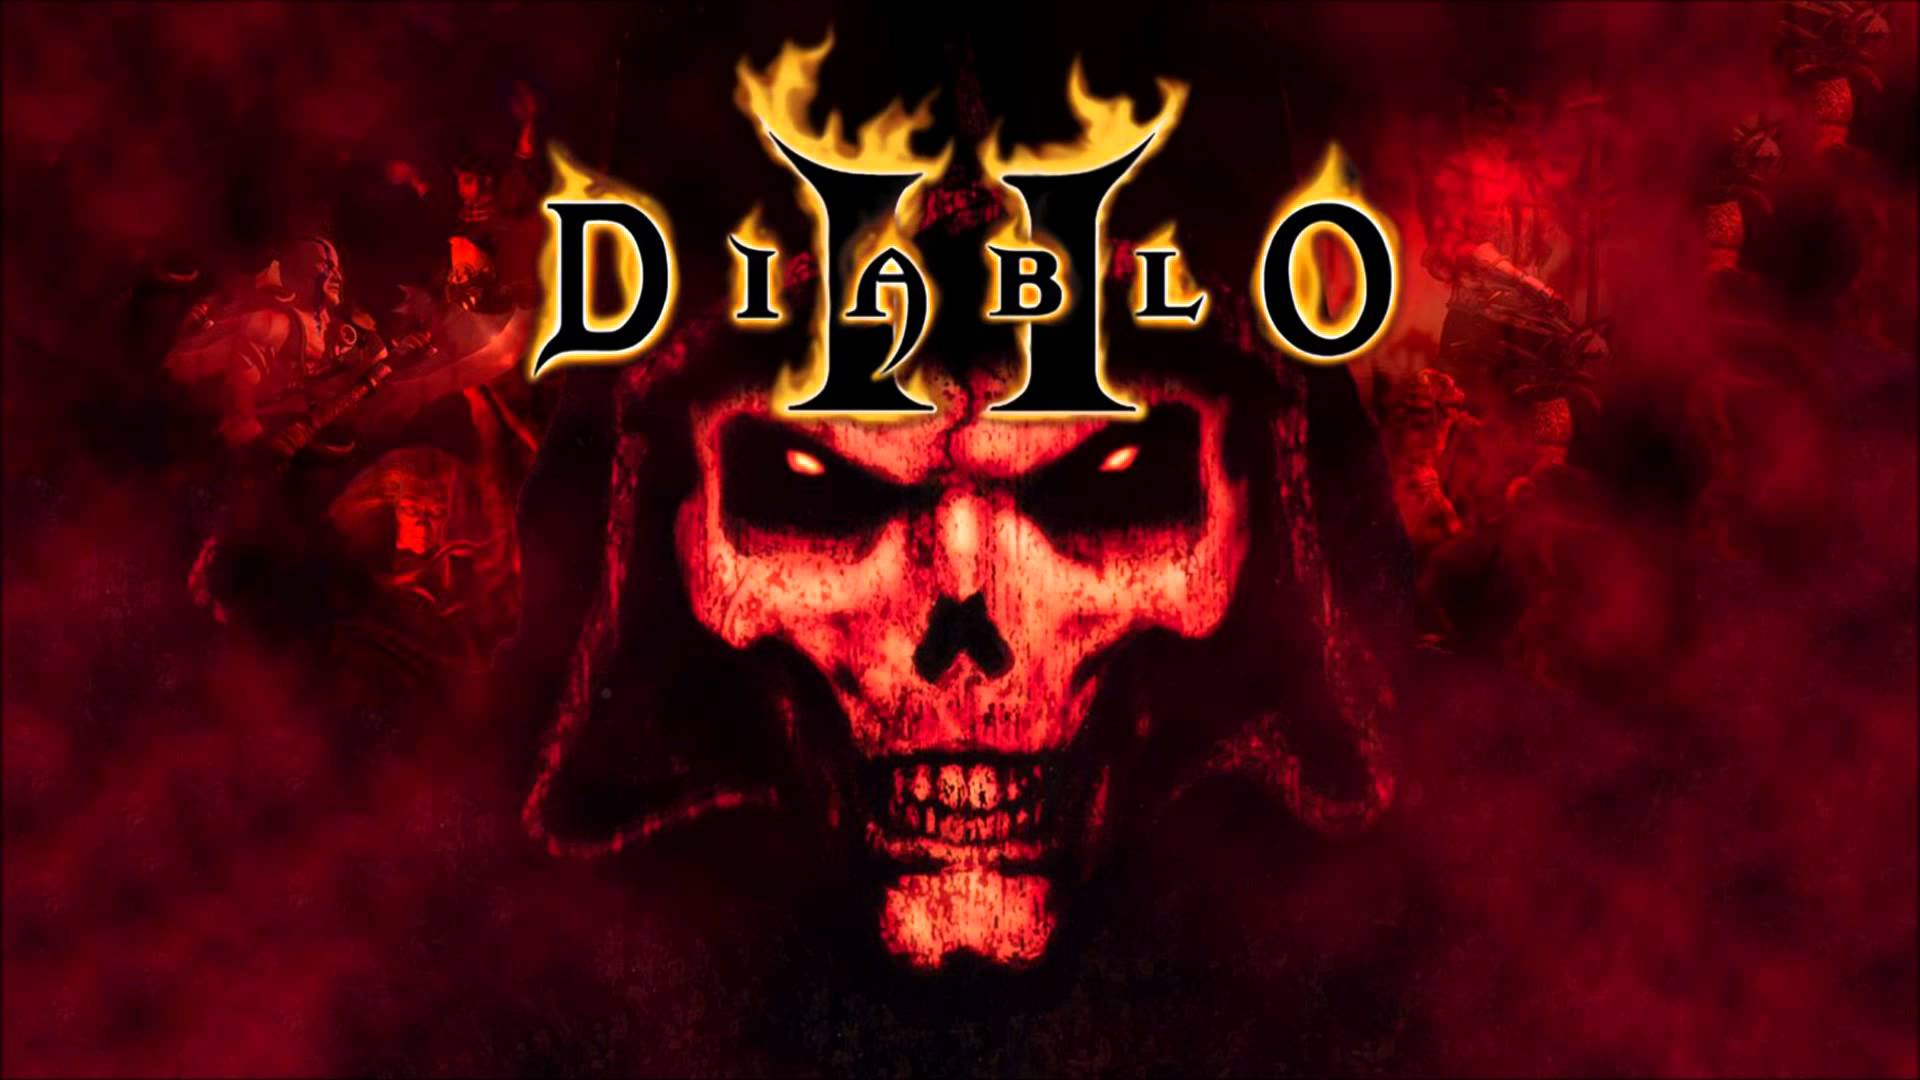 Diablo II released over 15 years ago gets a new patch, how cool is that?